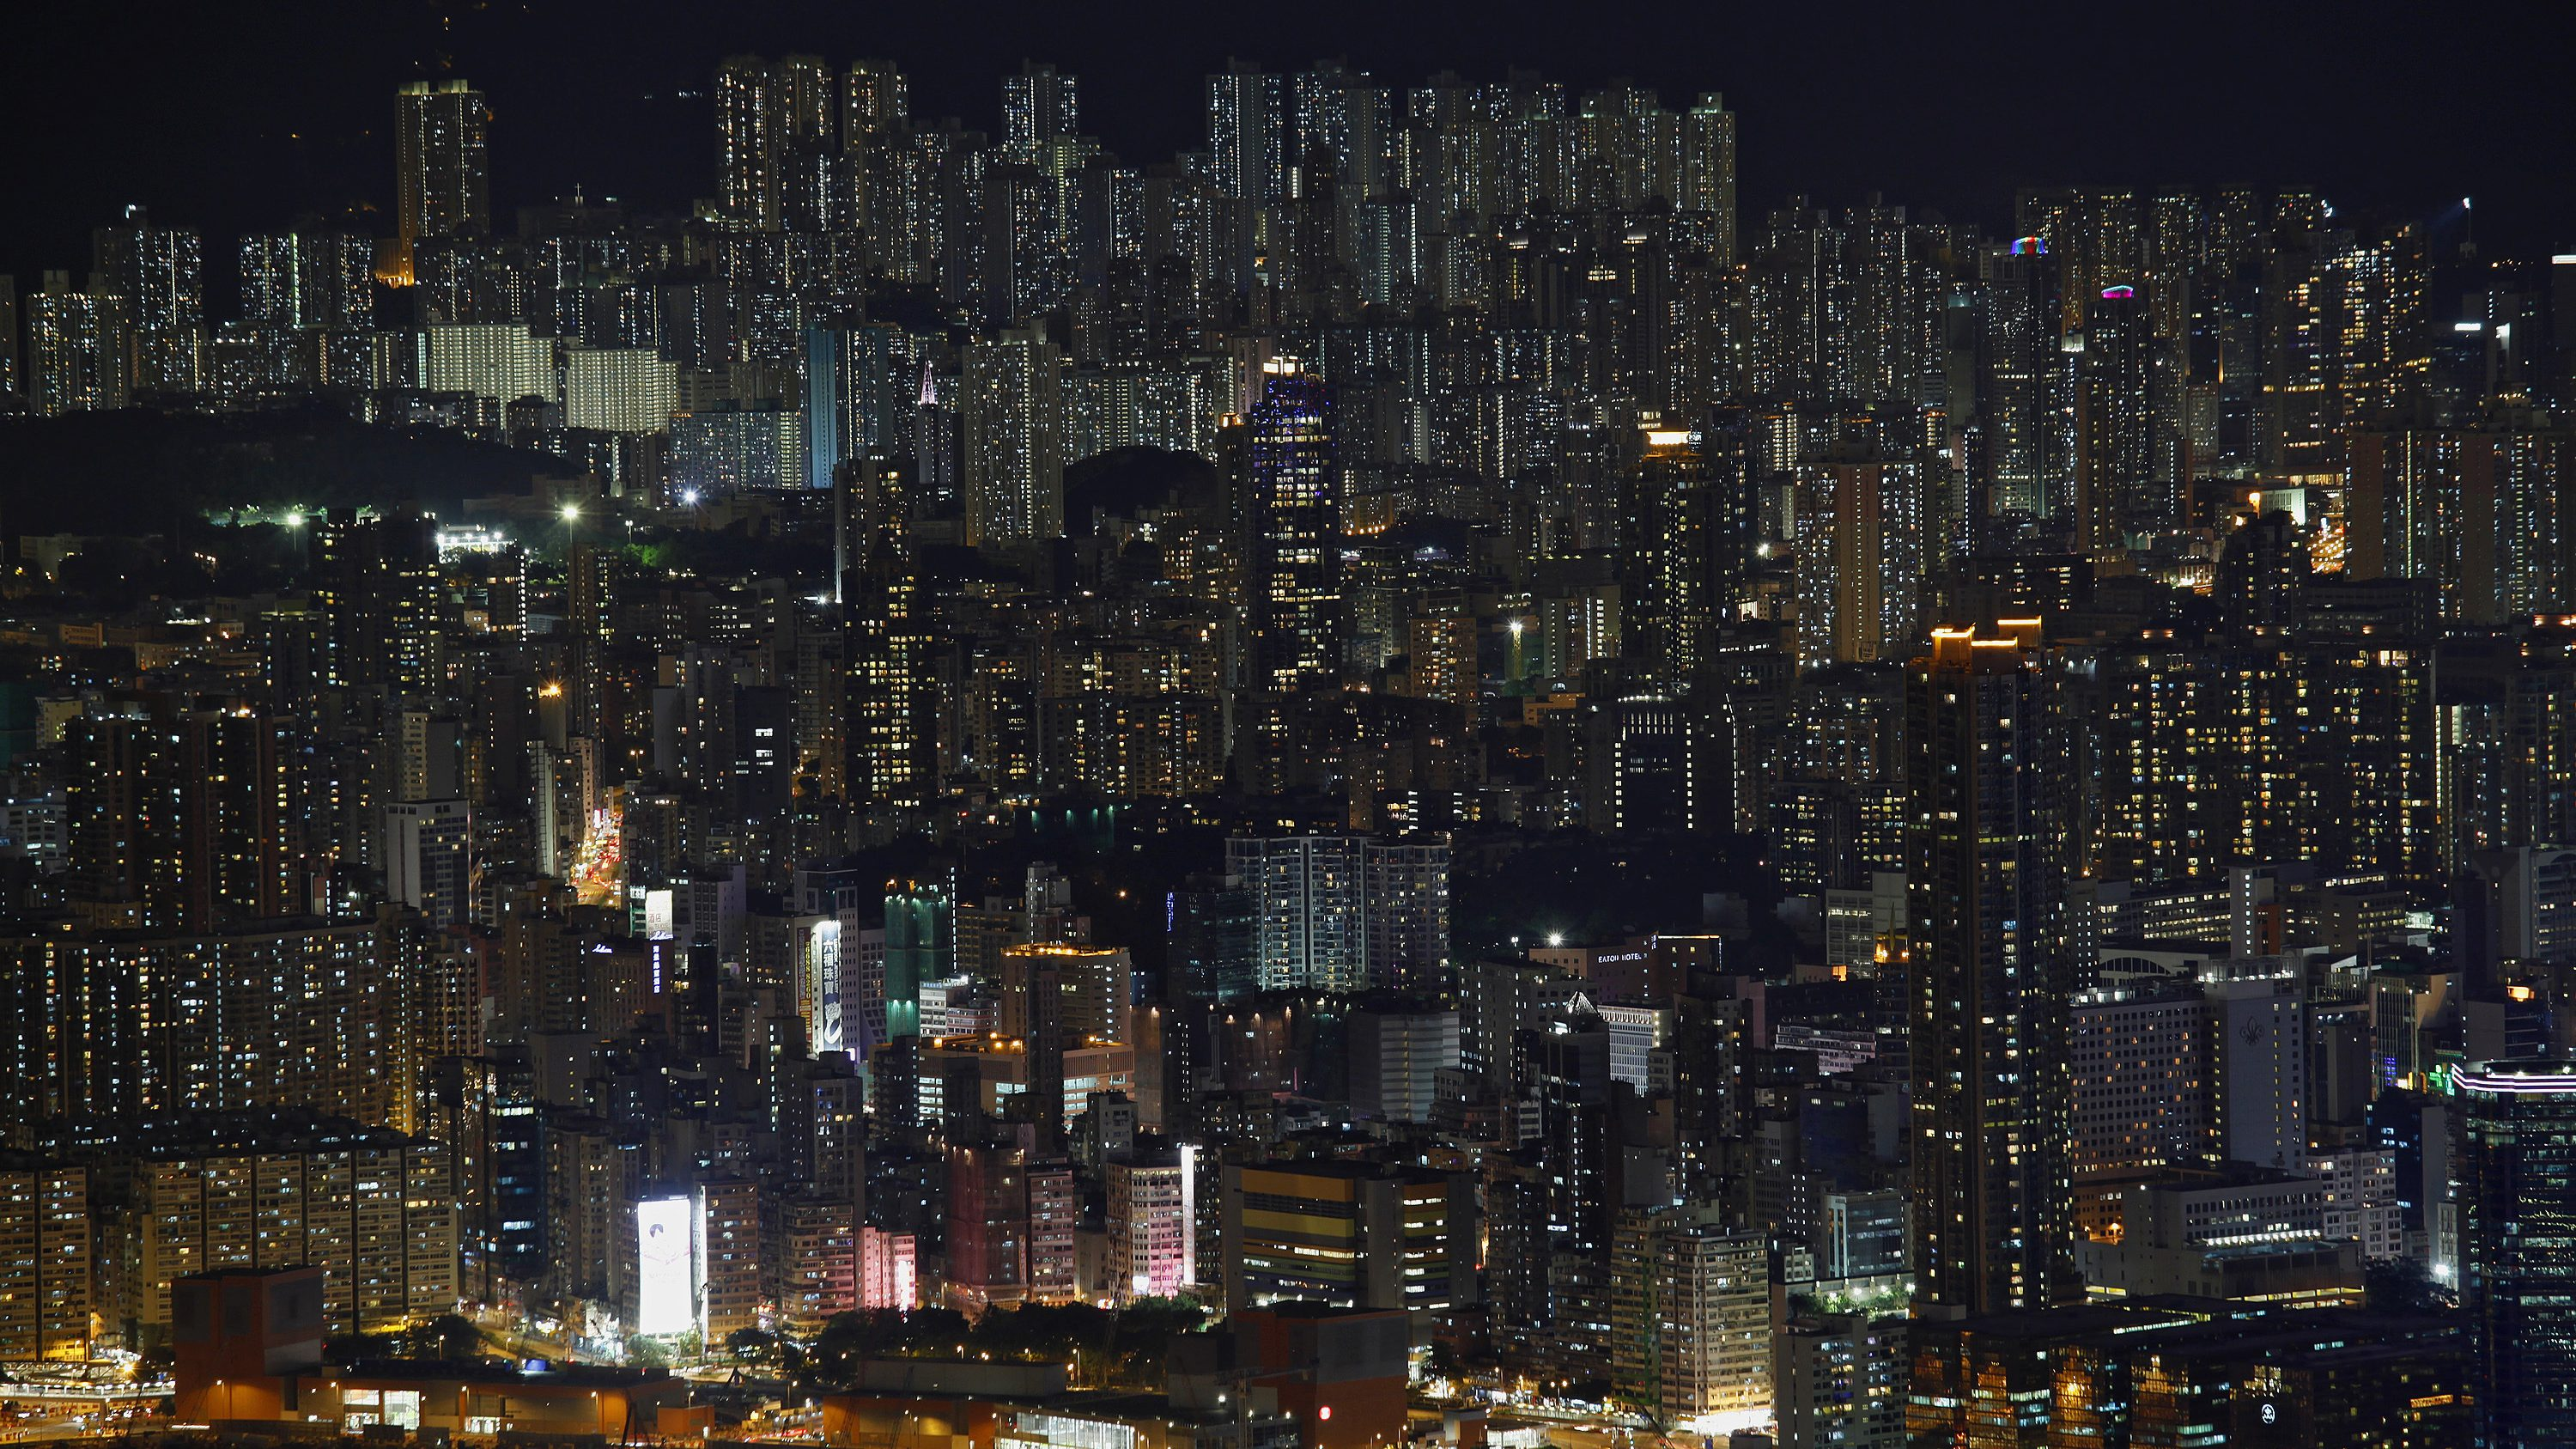 Buildings are seen on a hillside in Hong Kong June 19, 2012.  Hong Kong's main shopping district is gaining on New York's 5th Avenue for the title of world's most expensive retail zone as rents rise by 35 percent a year, pushing chains such as H&M out to the cheaper suburbs. Space has always been at a premium in Hong Kong, an island-city, like Manhattan, where developers plant high-rises on every available inch. Retail rents in prime shopping areas are rising more rapidly here than in New York, London or Paris. REUTERS/Bobby Yip (CHINA - Tags: CITYSPACE ENVIRONMENT REAL ESTATE BUSINESS) - GM1E87P0SKP01